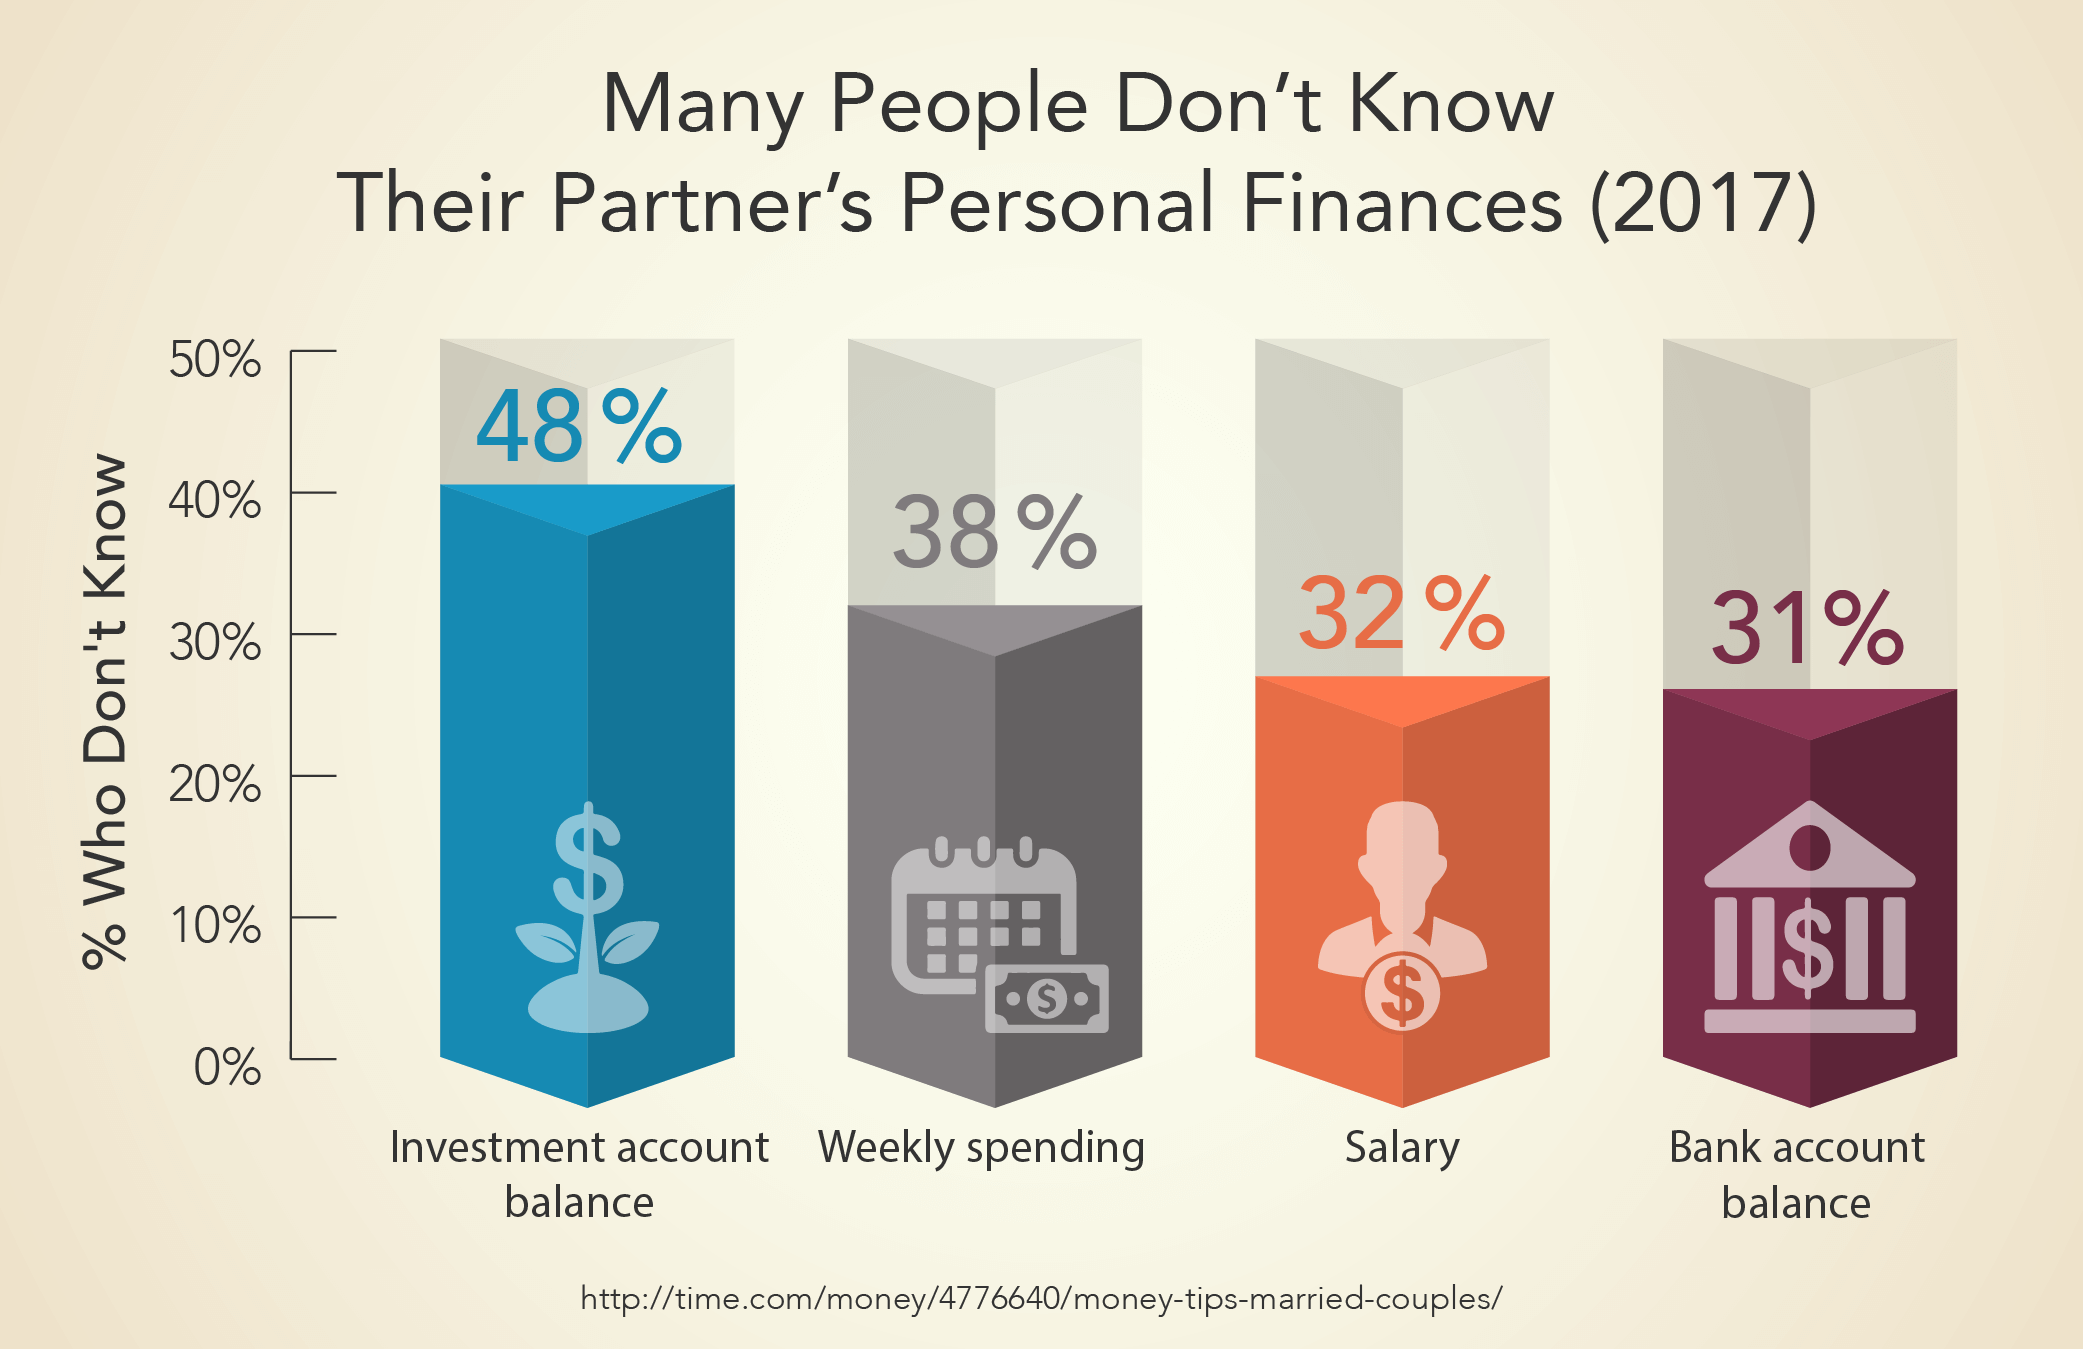 Many People Don't Know Their Partner's Personal Finances (2017)